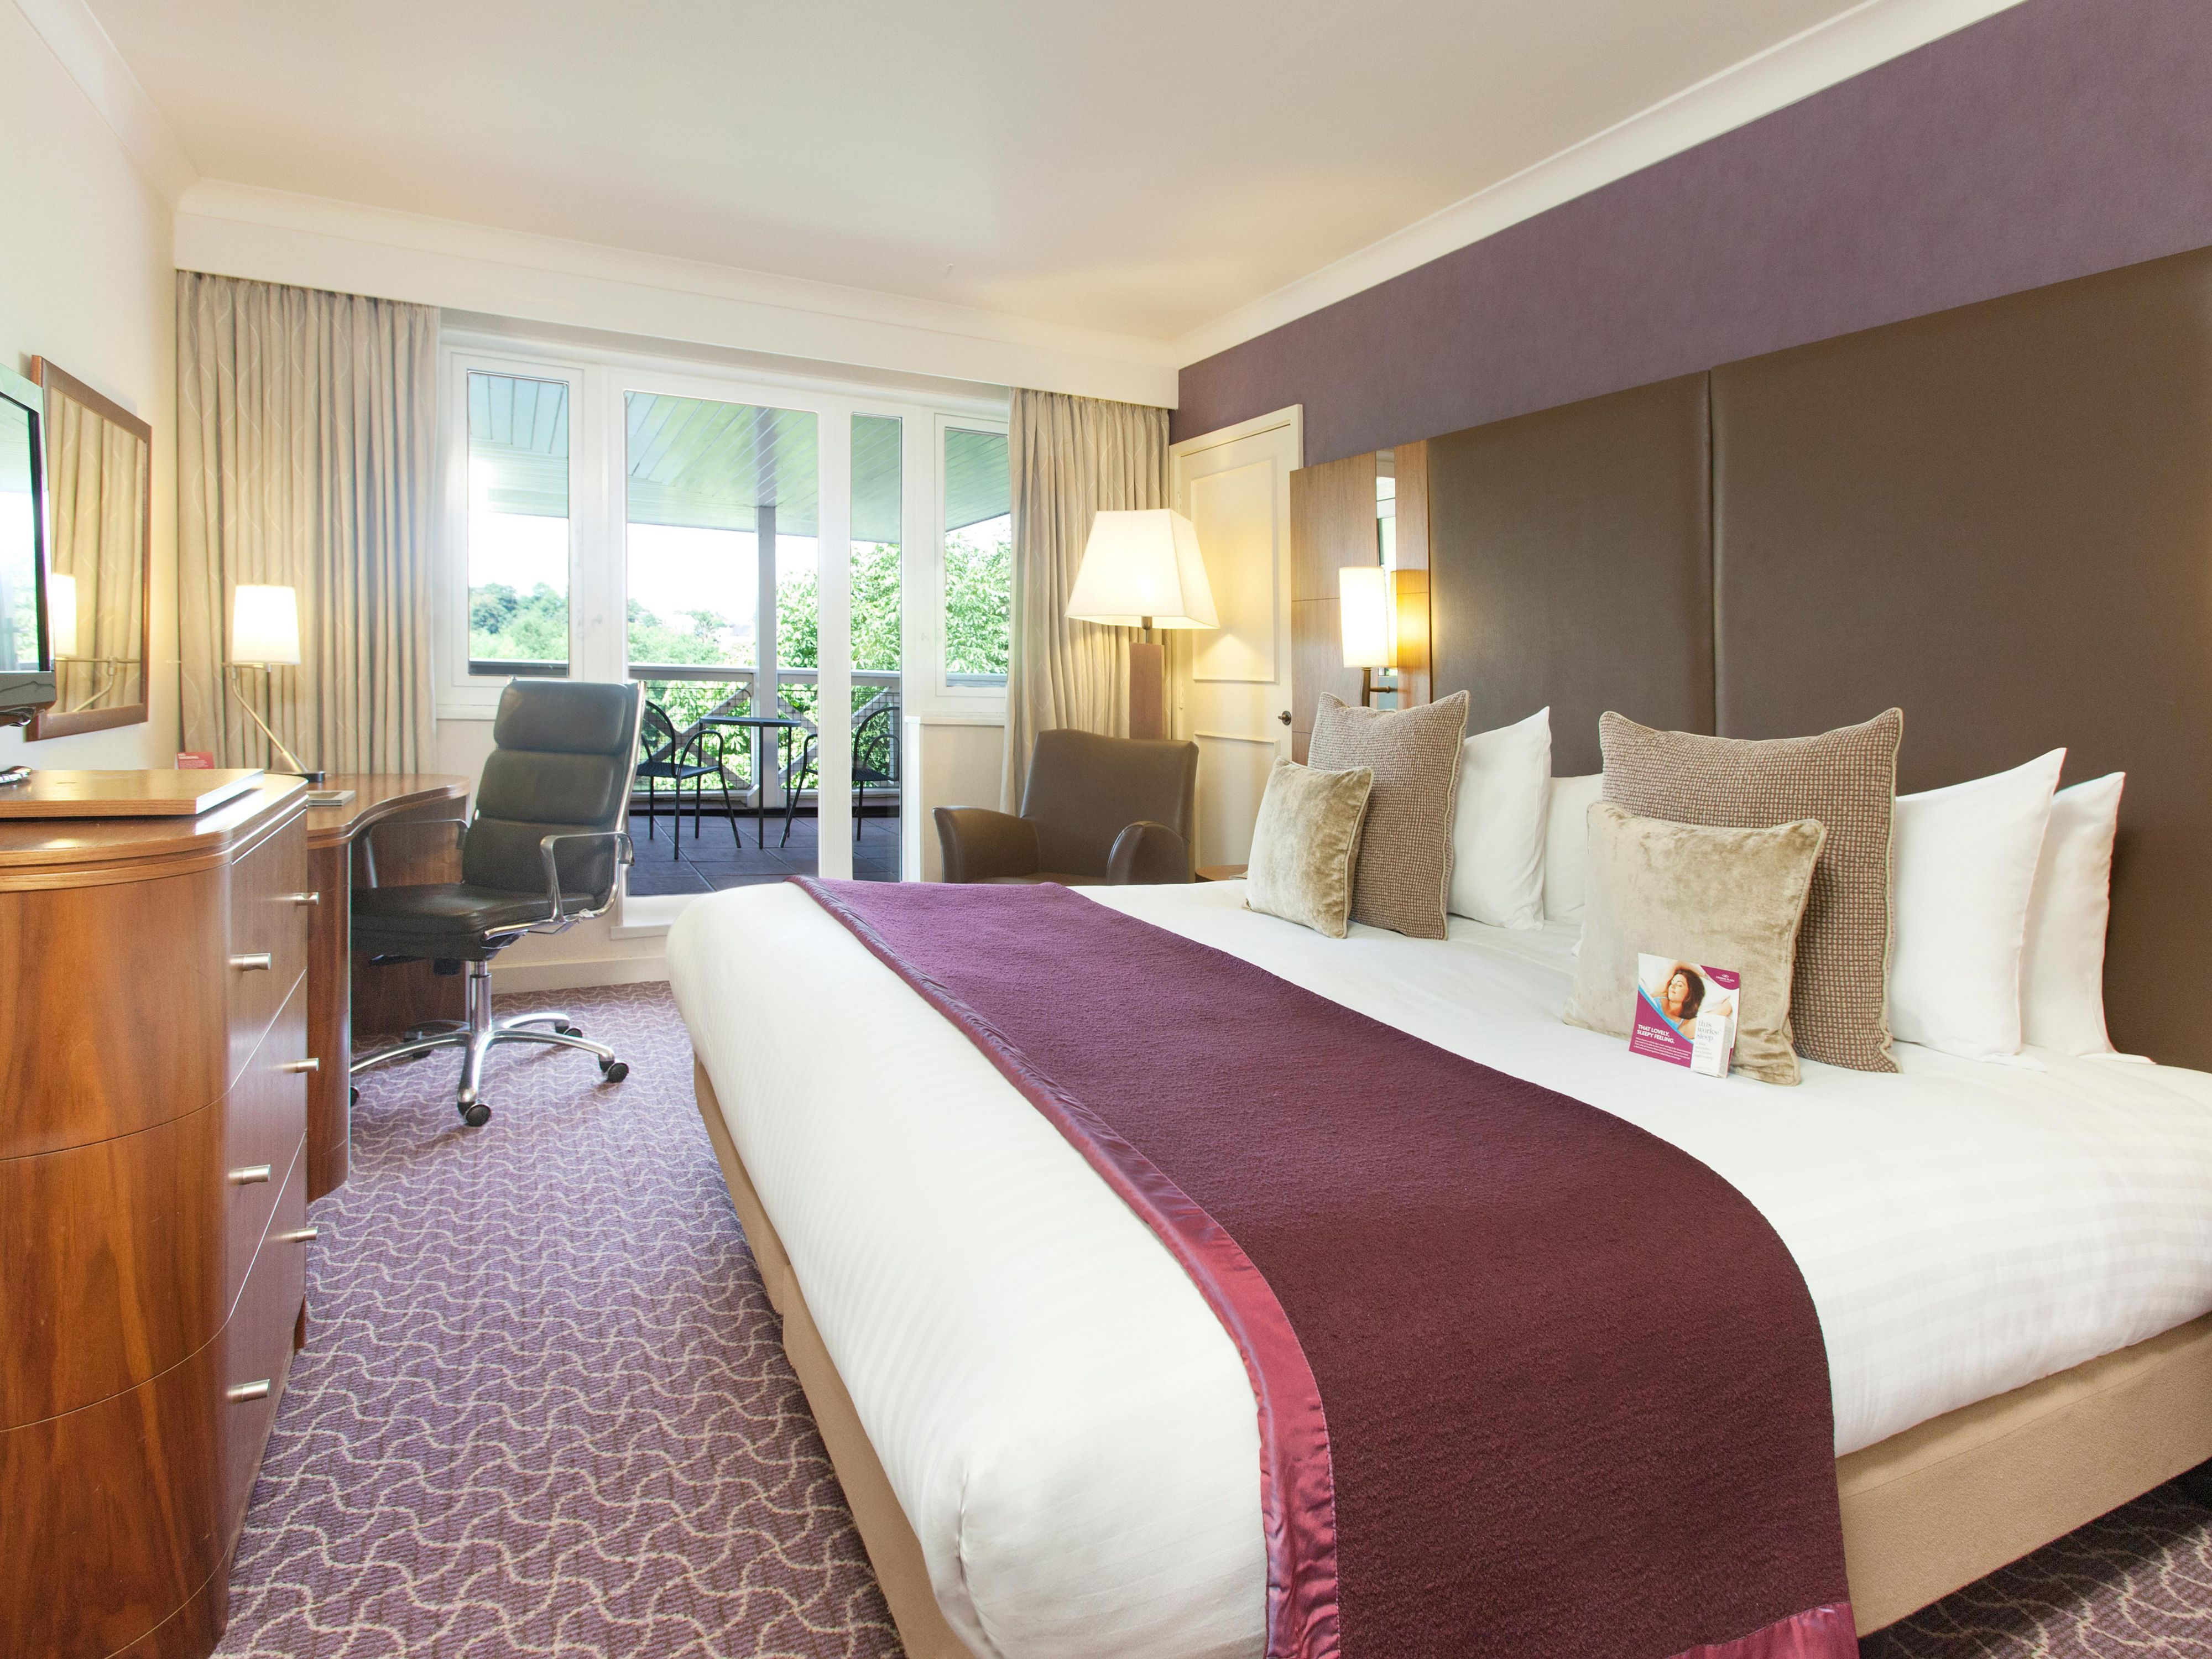 4 Star Business Hotels Reading Crowne Plaza